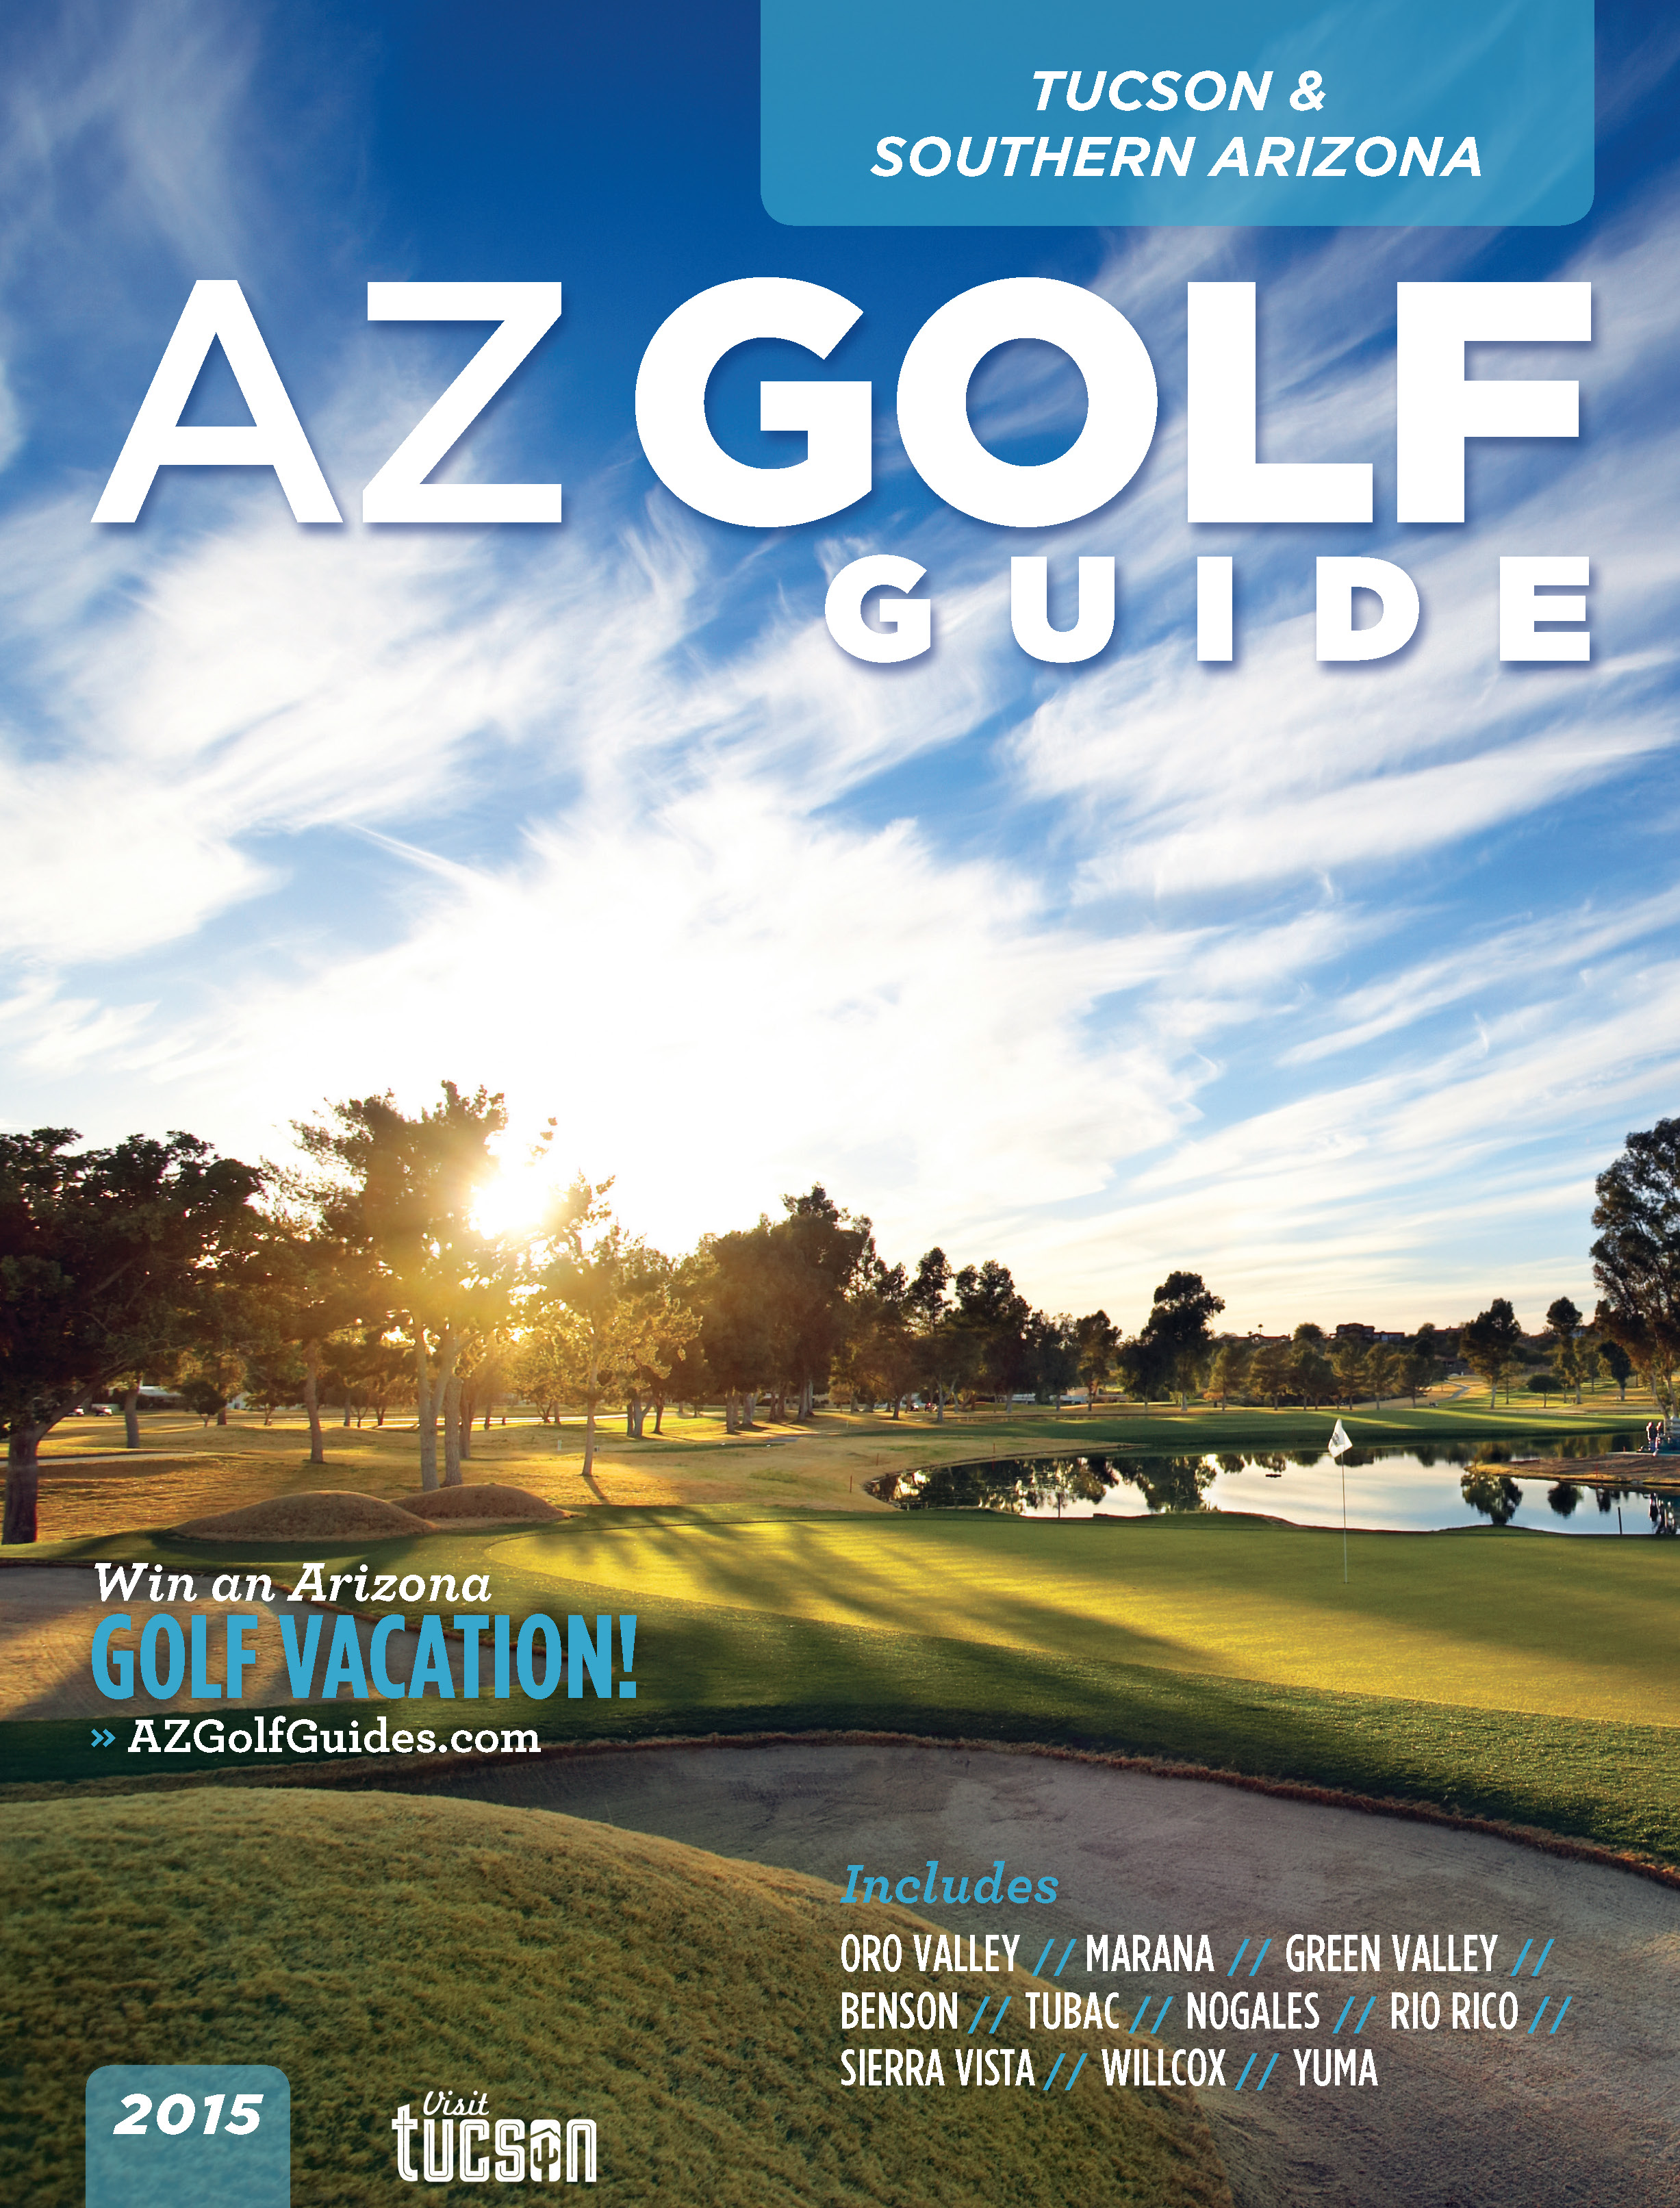 2015 Visit Tucson AZ Golf Guide